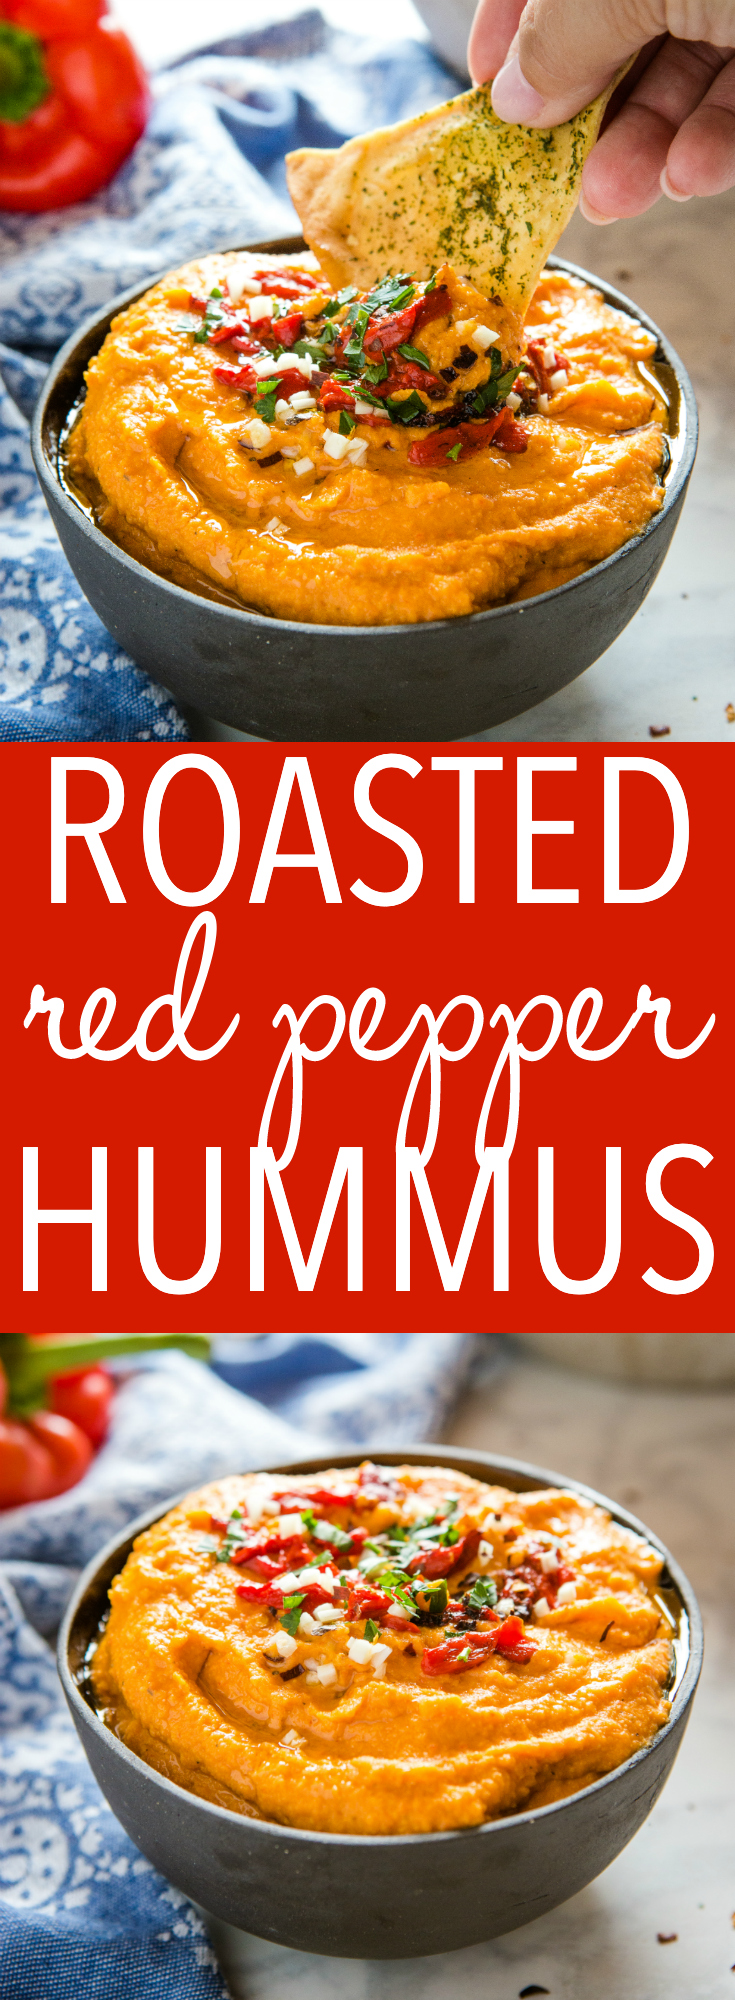 This Easy Roasted Red Pepper Hummus is the perfect easy-to-make snack or appetizer made with roasted red peppers, chickpeas, and garlic! Make it spicy or mild! Recipe from thebusybaker.ca! #recipe #hummus #roastedredpepper #chili #vegetarian #vegan #healthy #snack #appetizer #pitachips via @busybakerblog